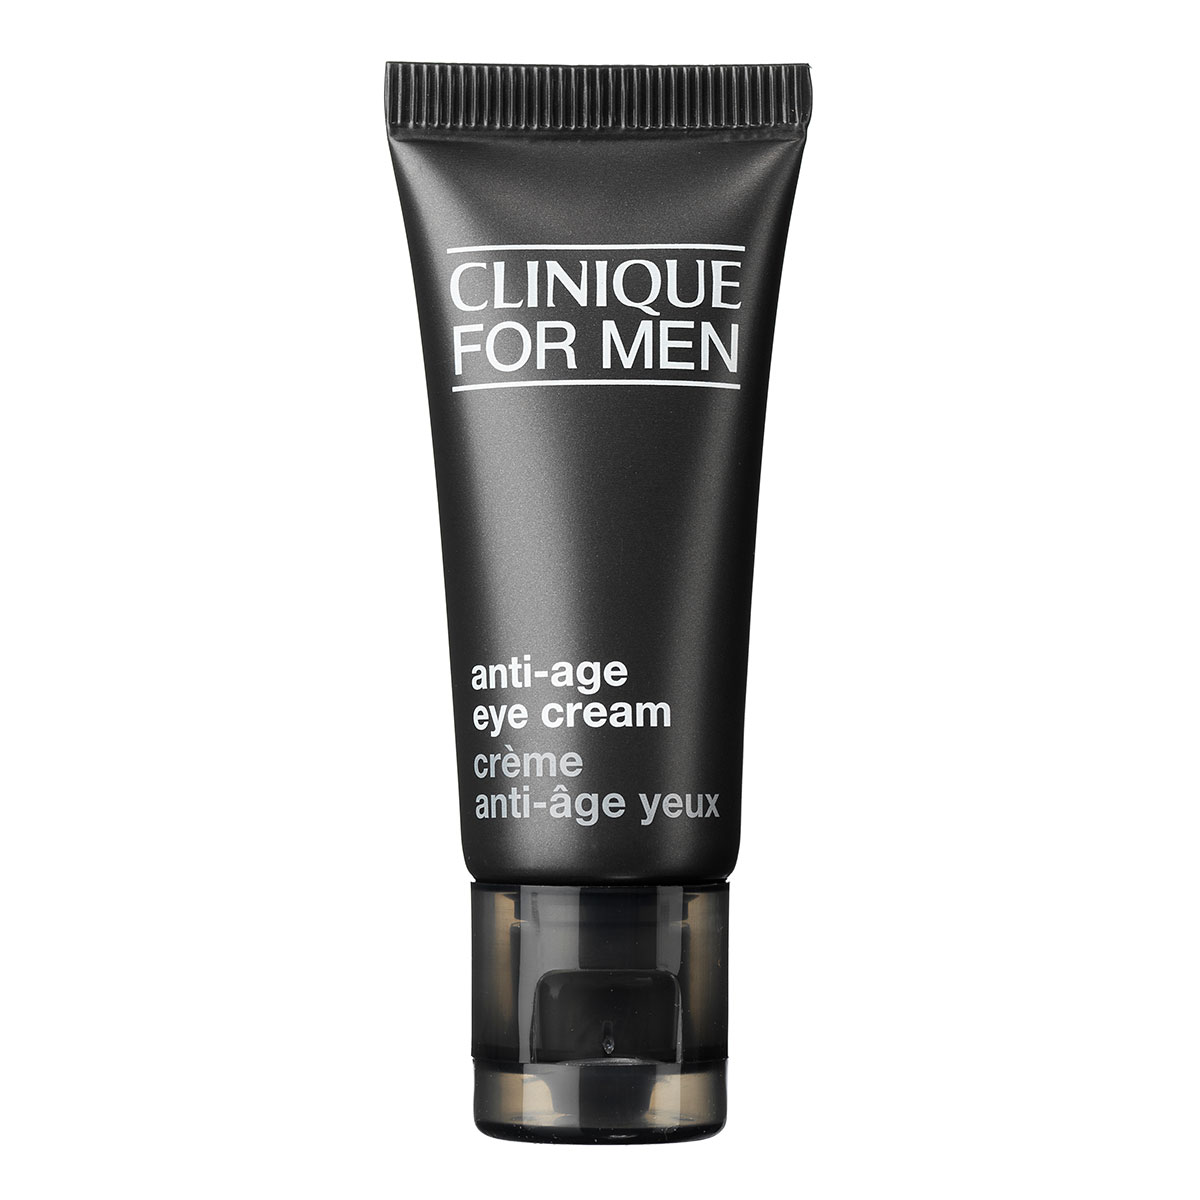 Clinique For Men Anti-Age Eye Cream - 15 ml